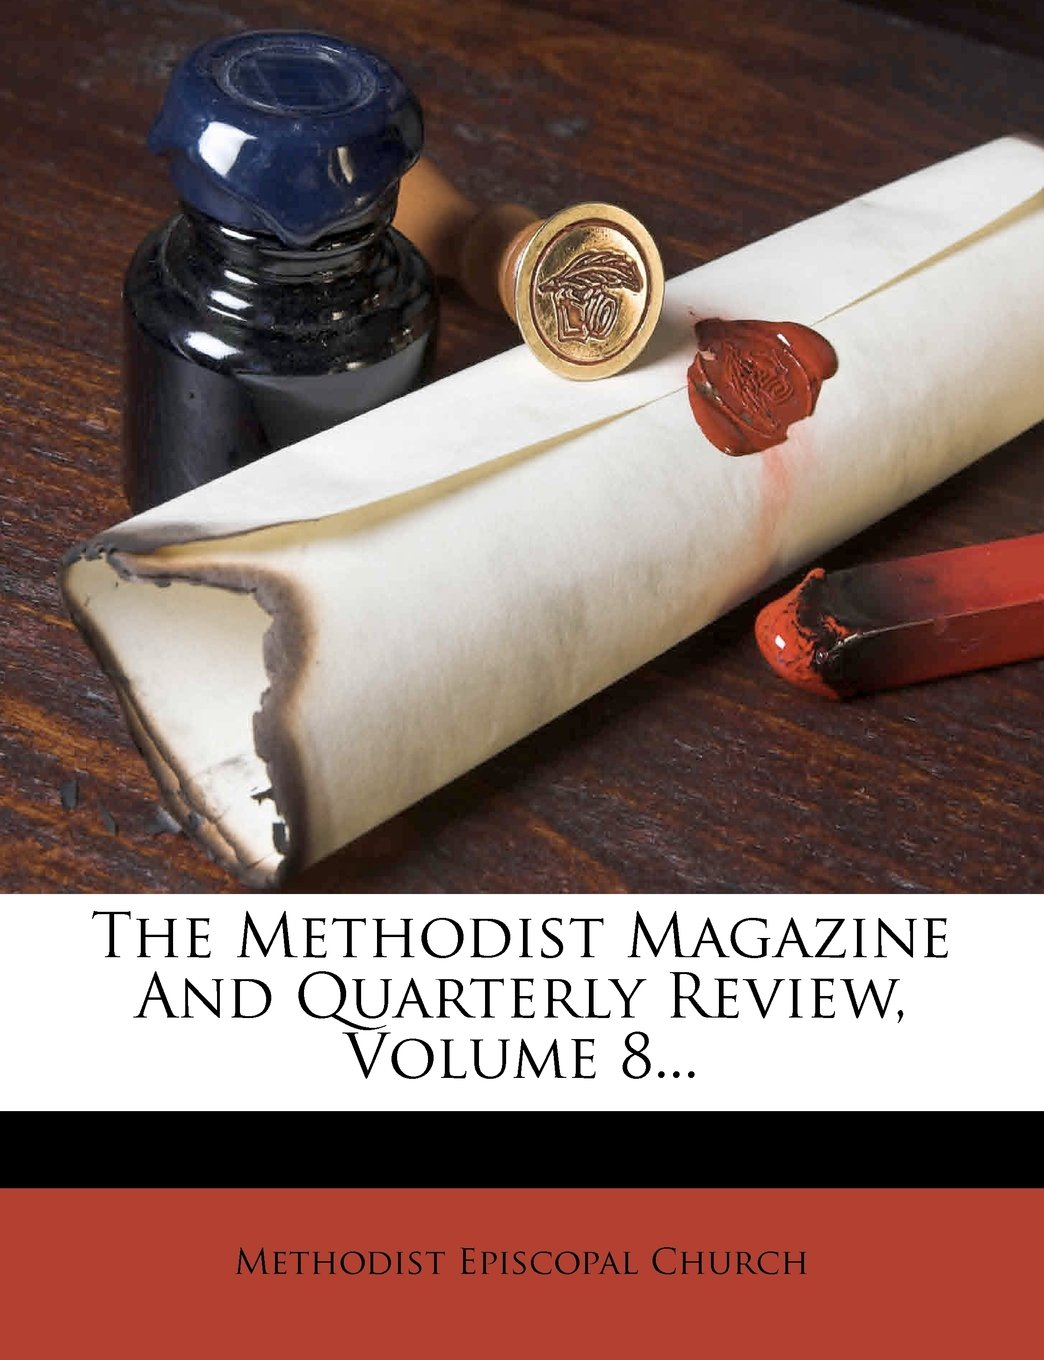 Download The Methodist Magazine And Quarterly Review, Volume 8... pdf